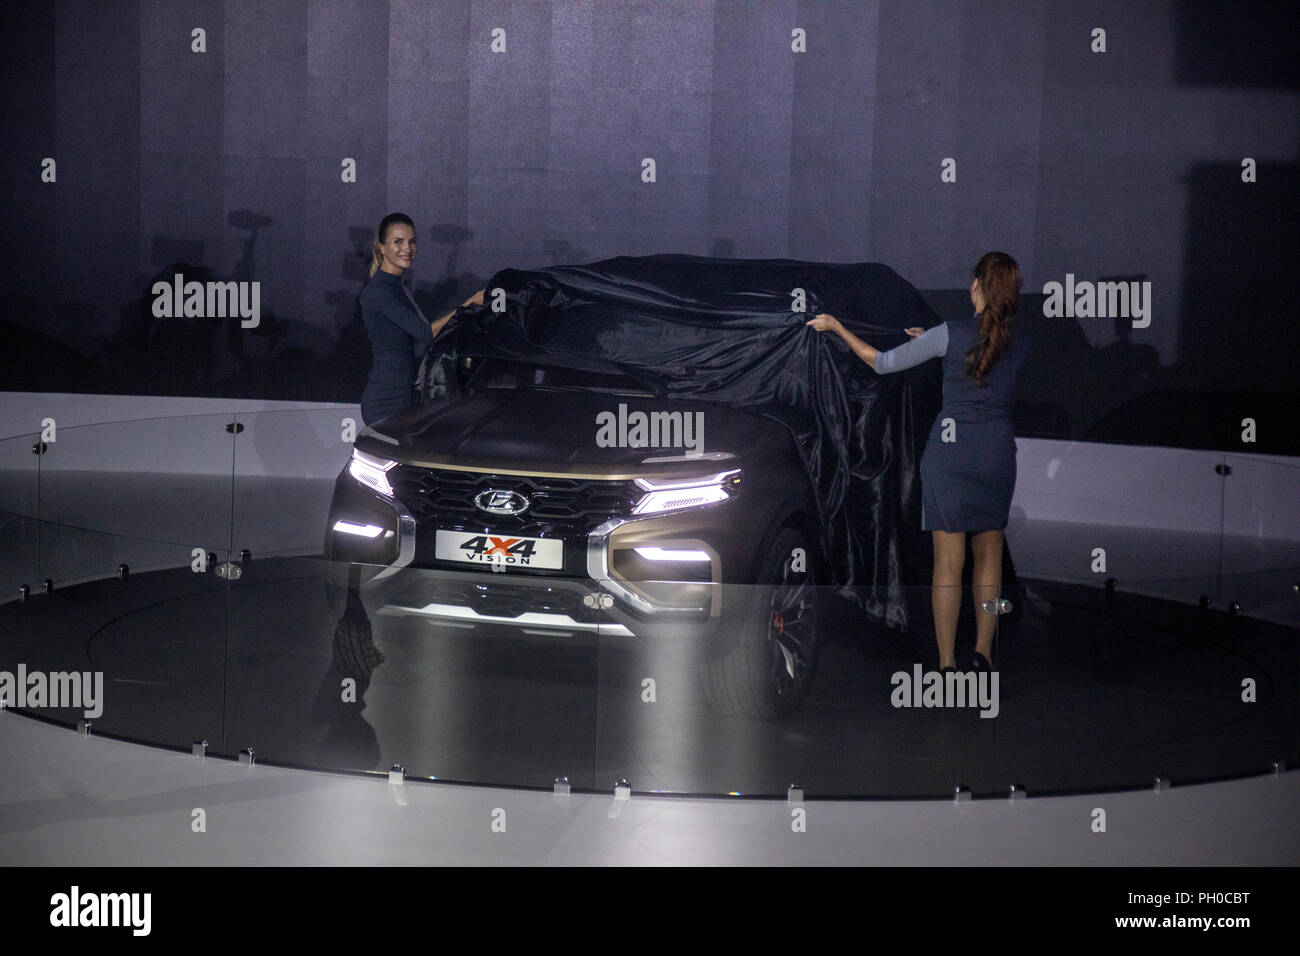 Expo Exhibition Stands Parking : Avtovaz lada stock photos images alamy